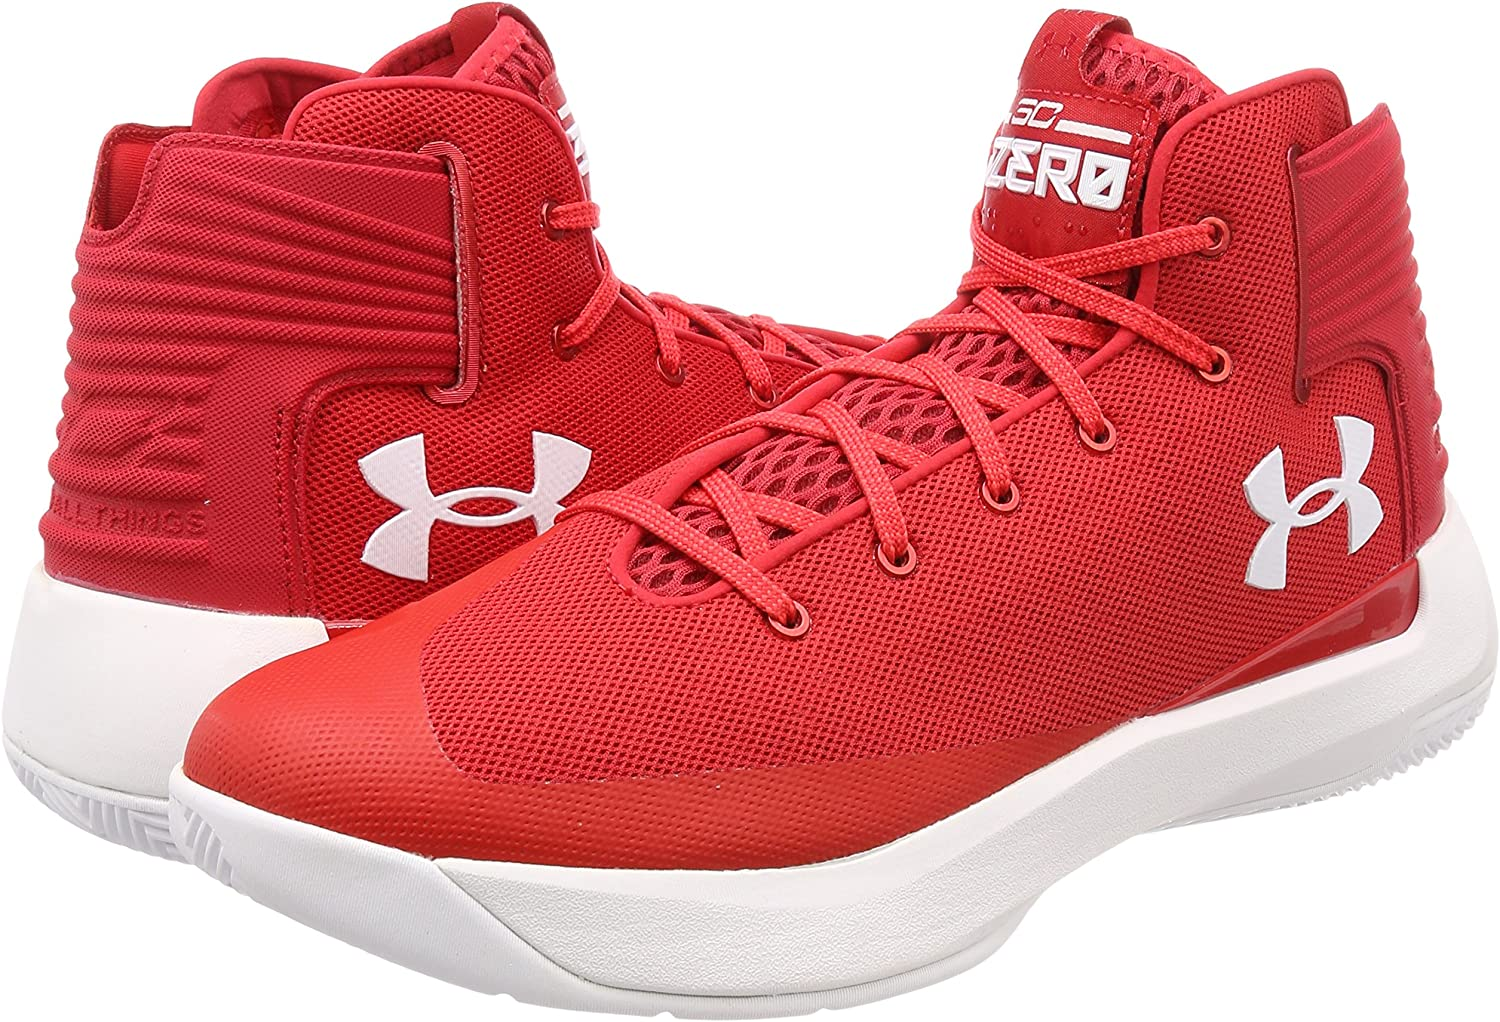 Chaussures de Basketball Homme Under Armour Curry 3